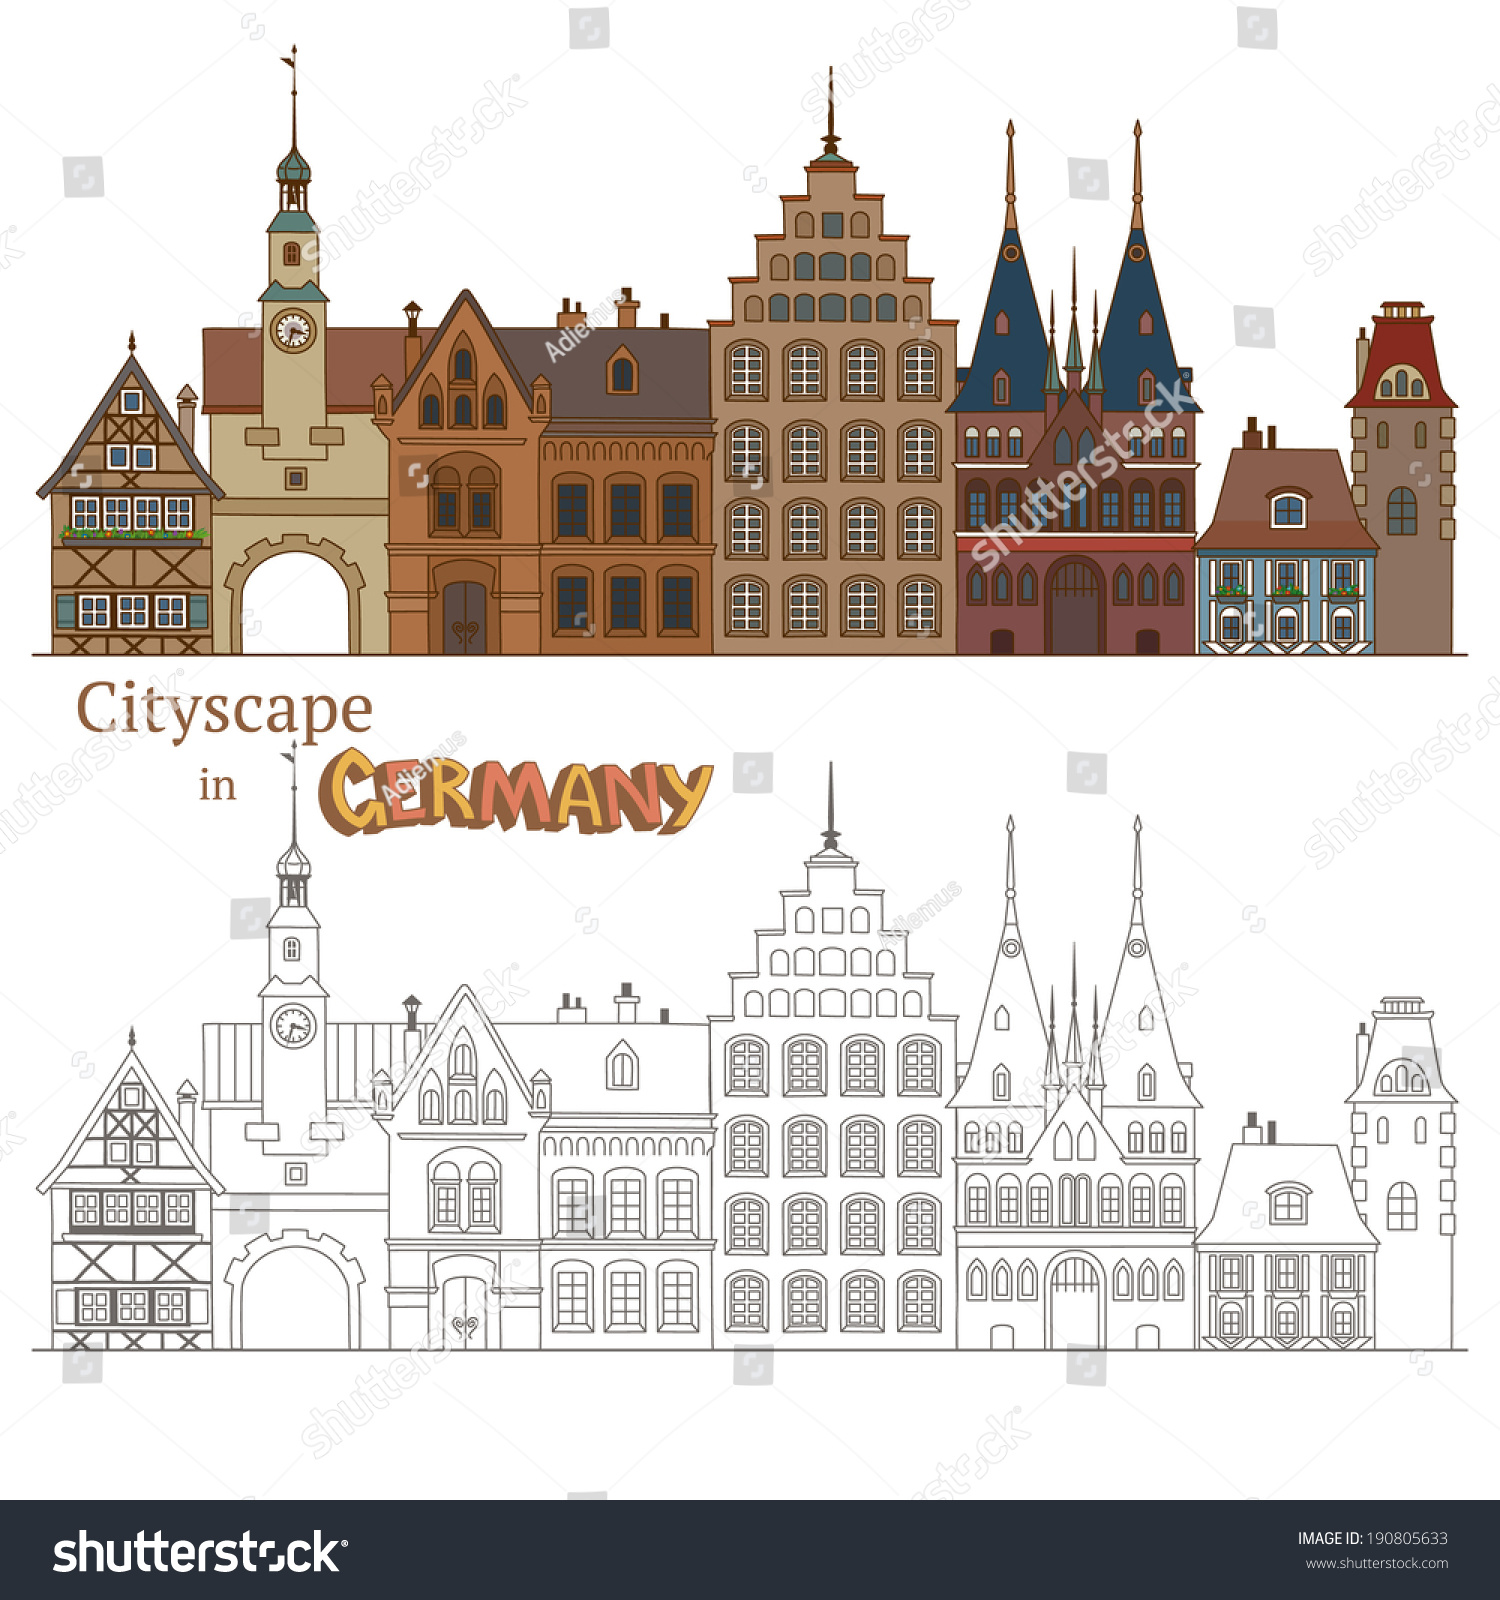 design cityscape germany typical german architecture stock vector 190805633 shutterstock. Black Bedroom Furniture Sets. Home Design Ideas